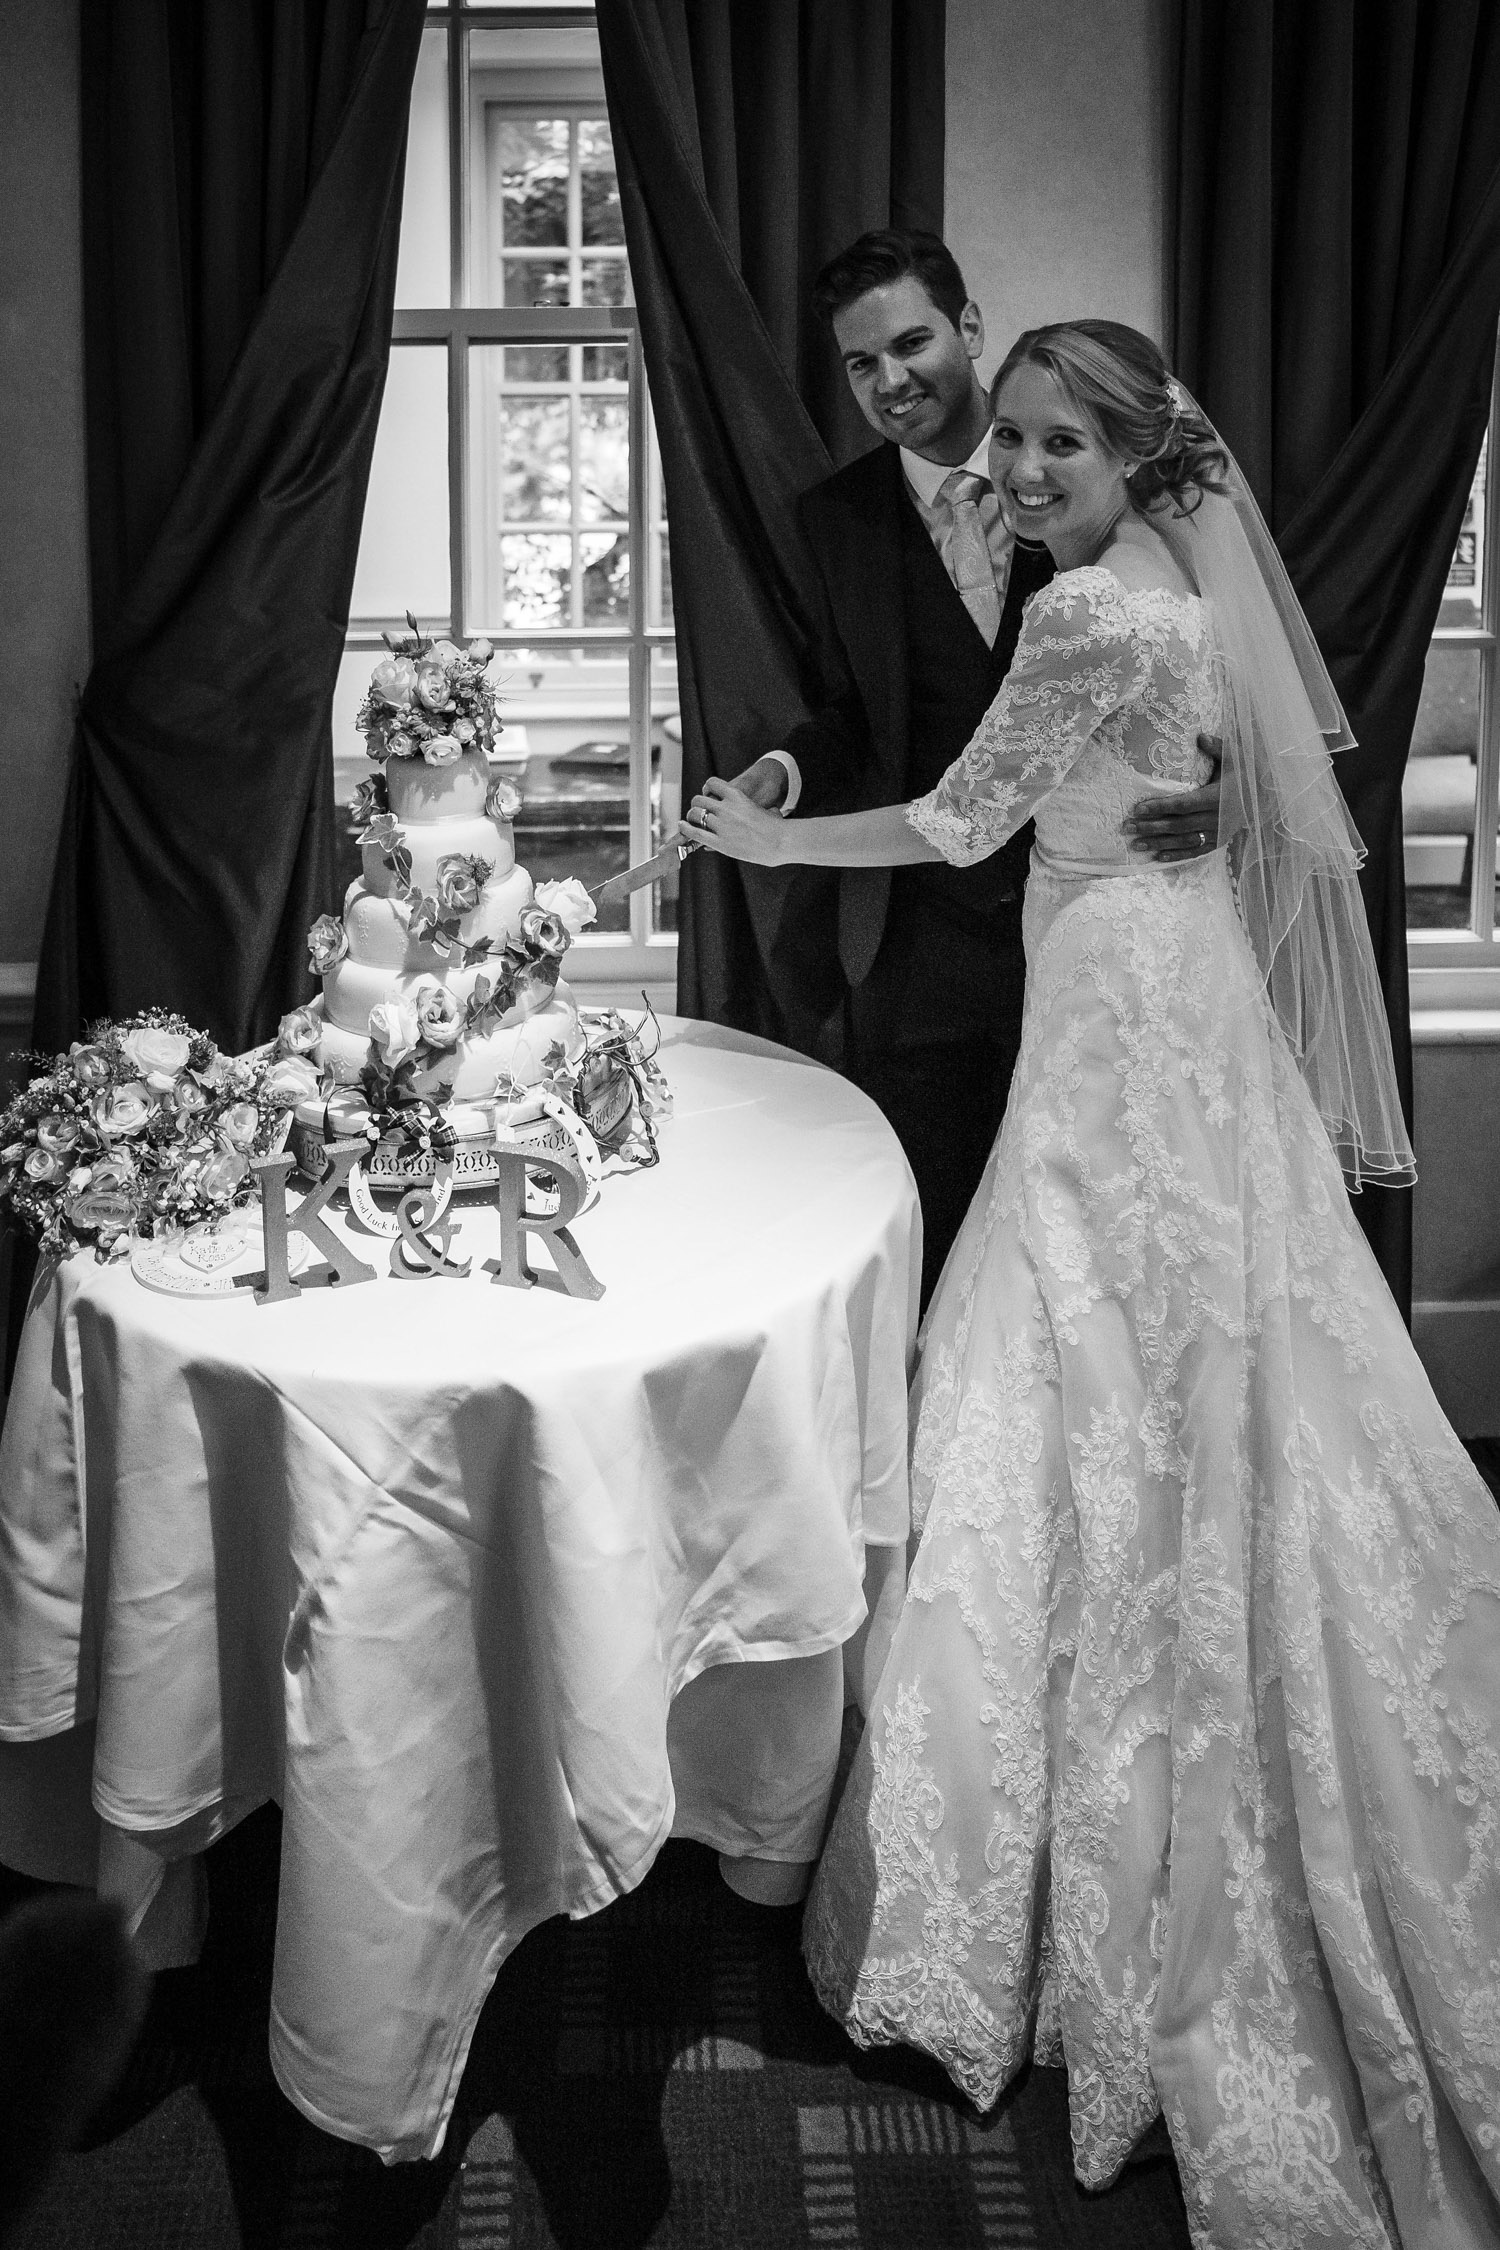 Cake cutting at Chilston Park Hotel